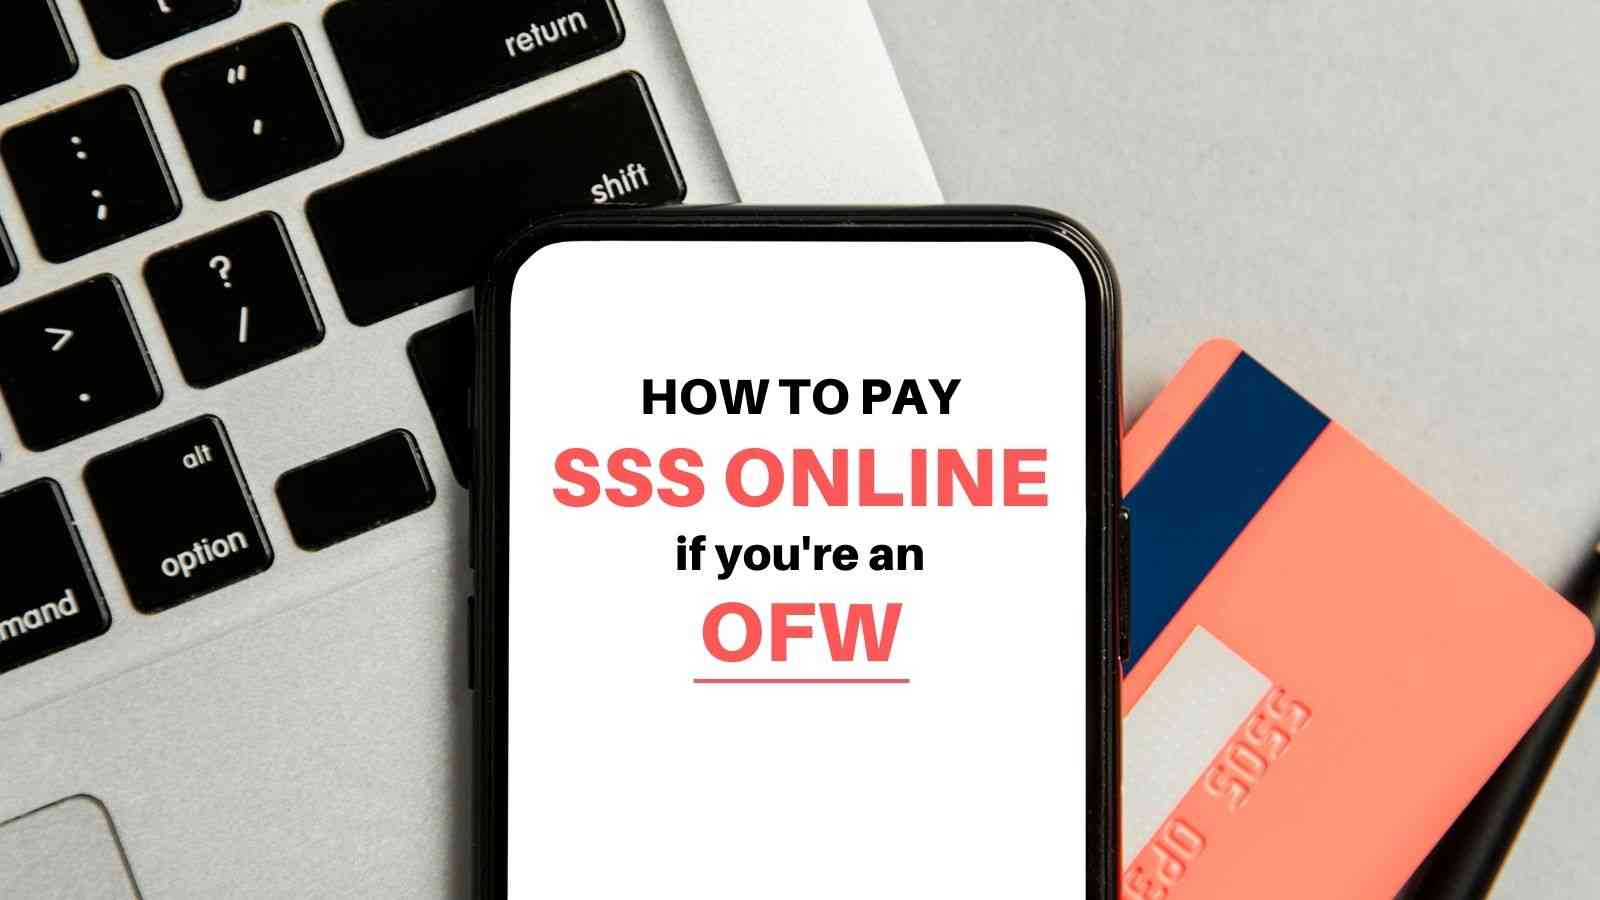 how to pay sss online if ofw member